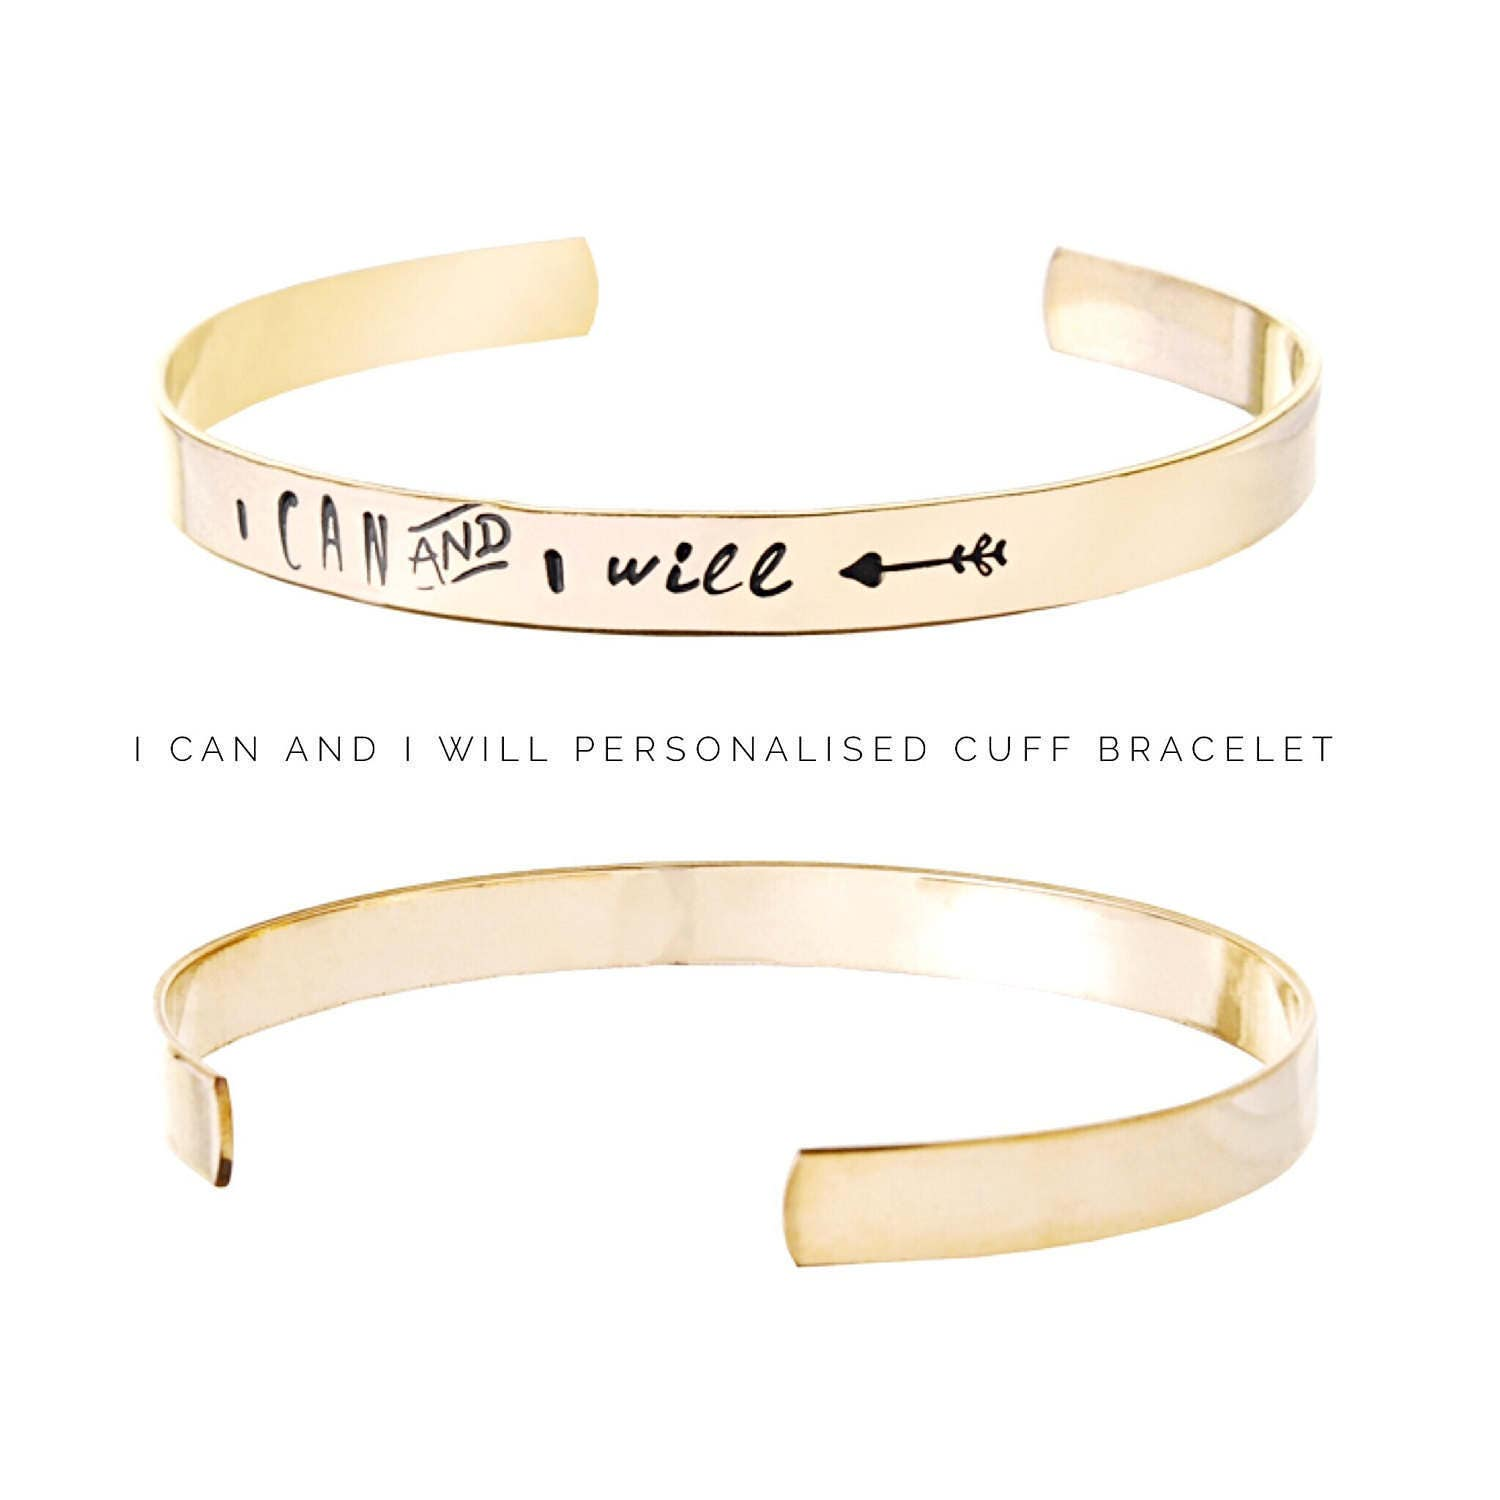 Womens gift  Personalized jewelry  I can and I will  Personalized Bracelet  Gift ideas for her  Gifts for friends (C175)